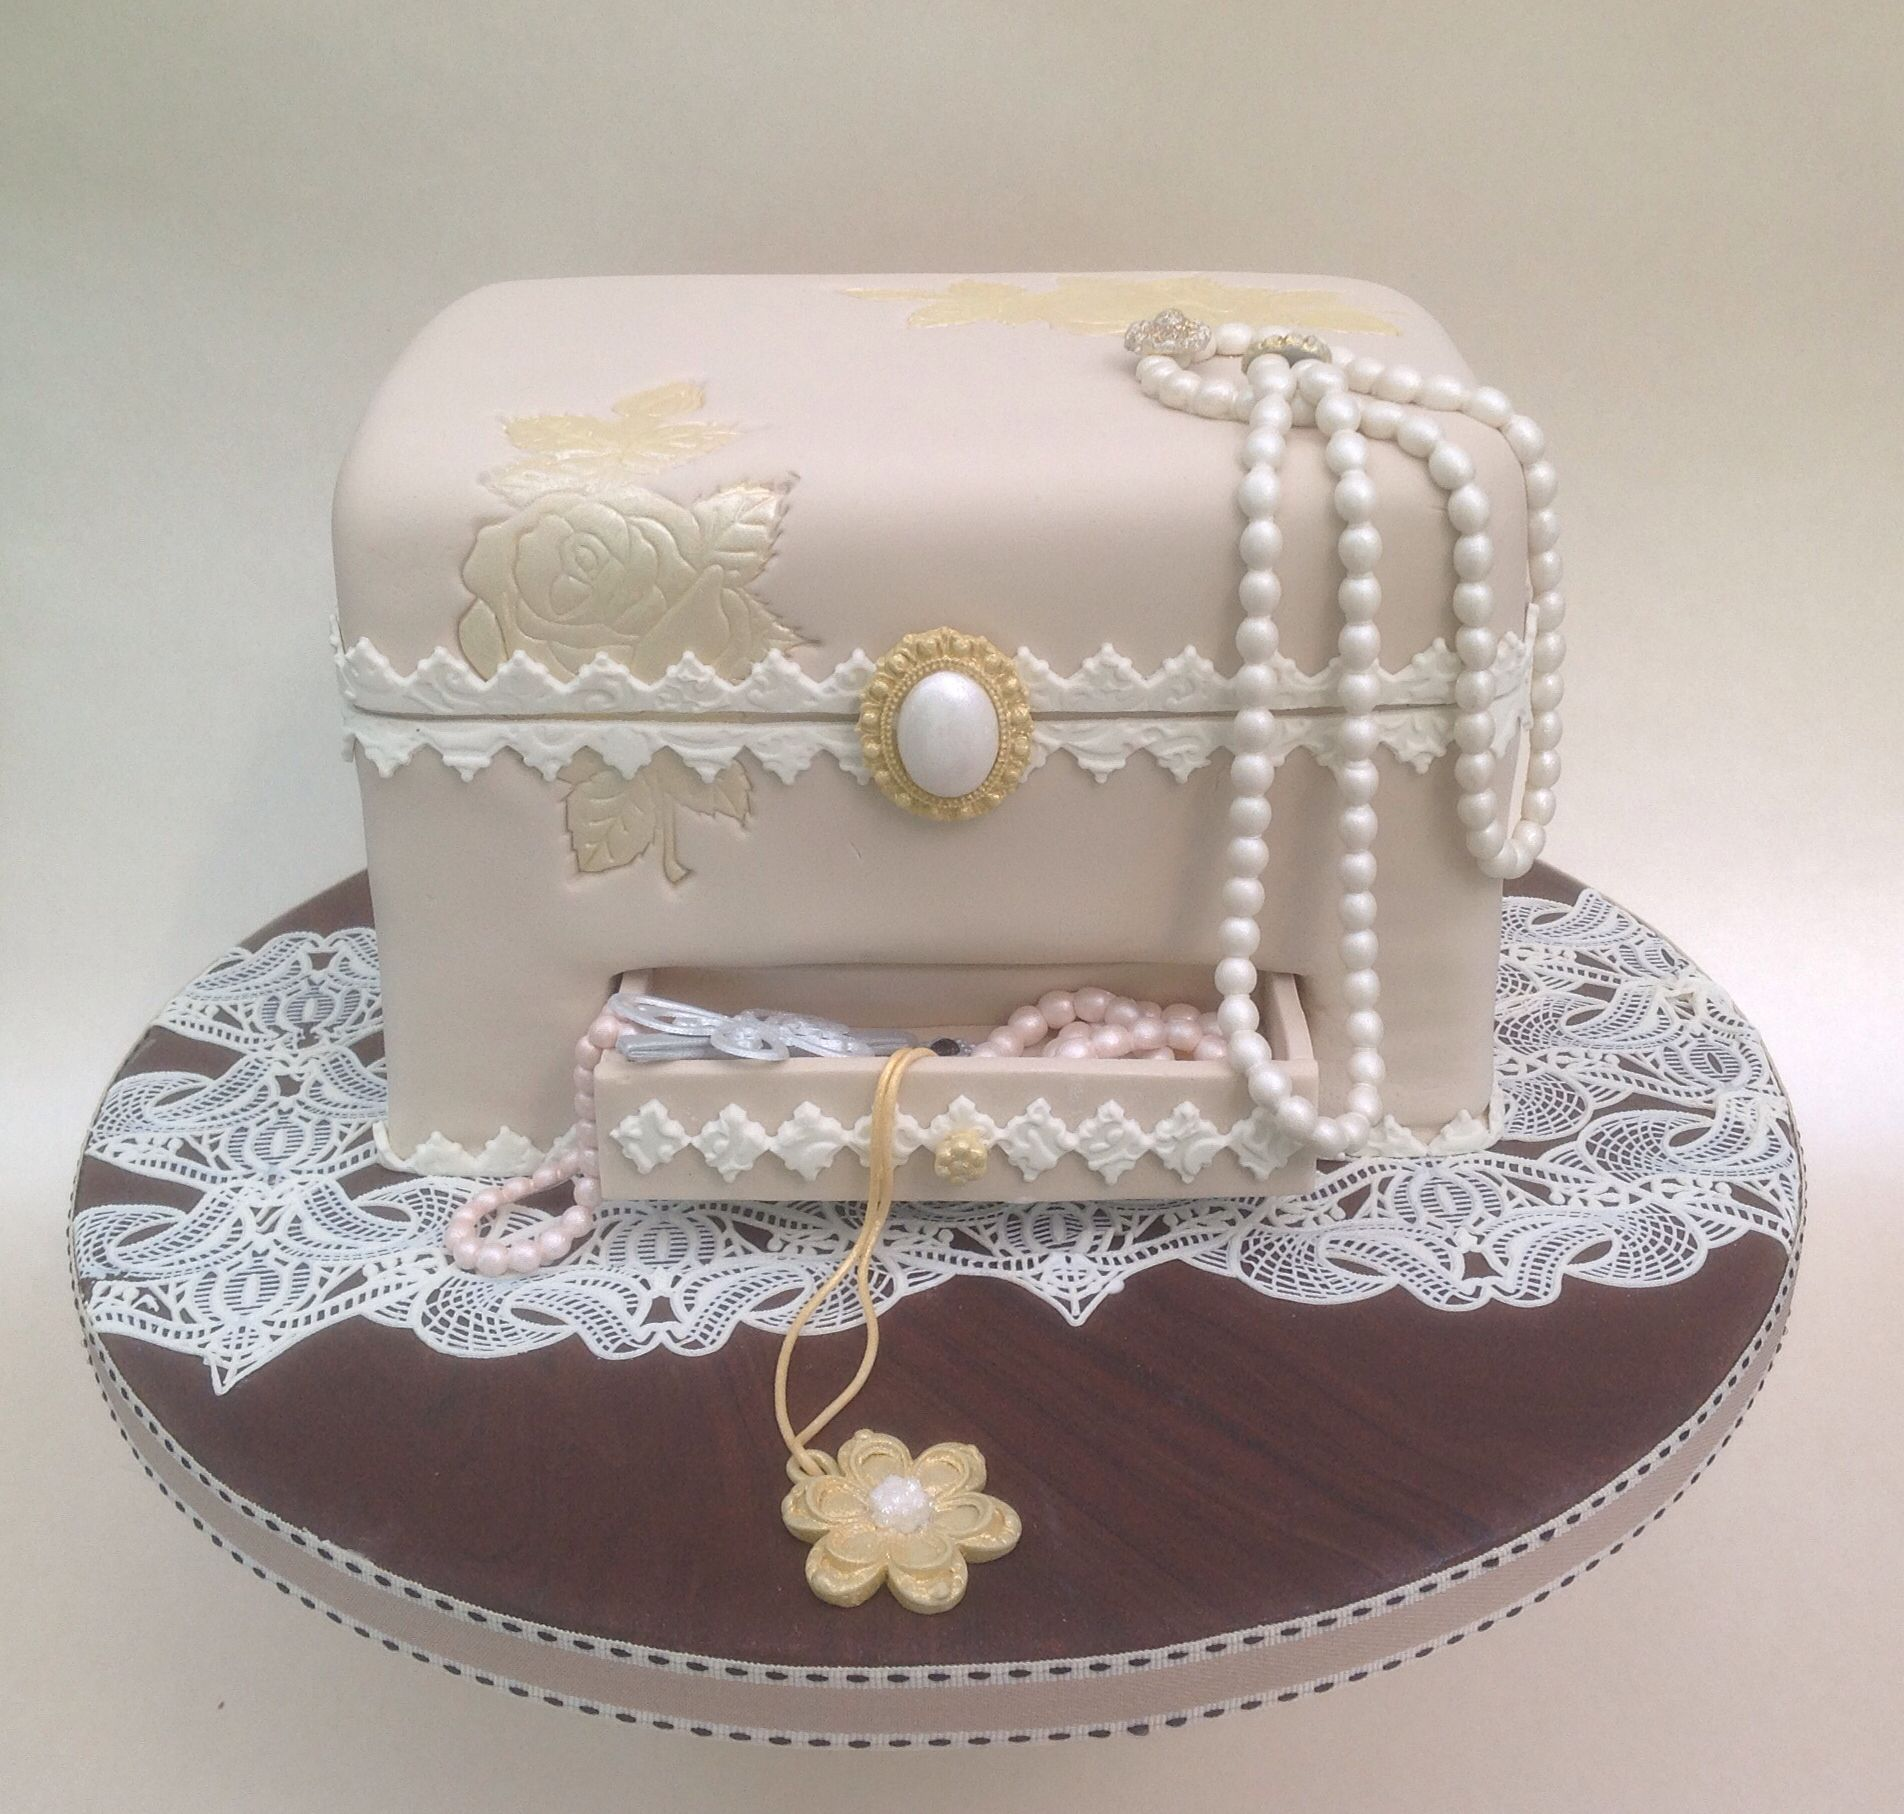 Vintage Style Jewellery Box Vintage Style Jewellery Box Birthday Cake Design Inspired